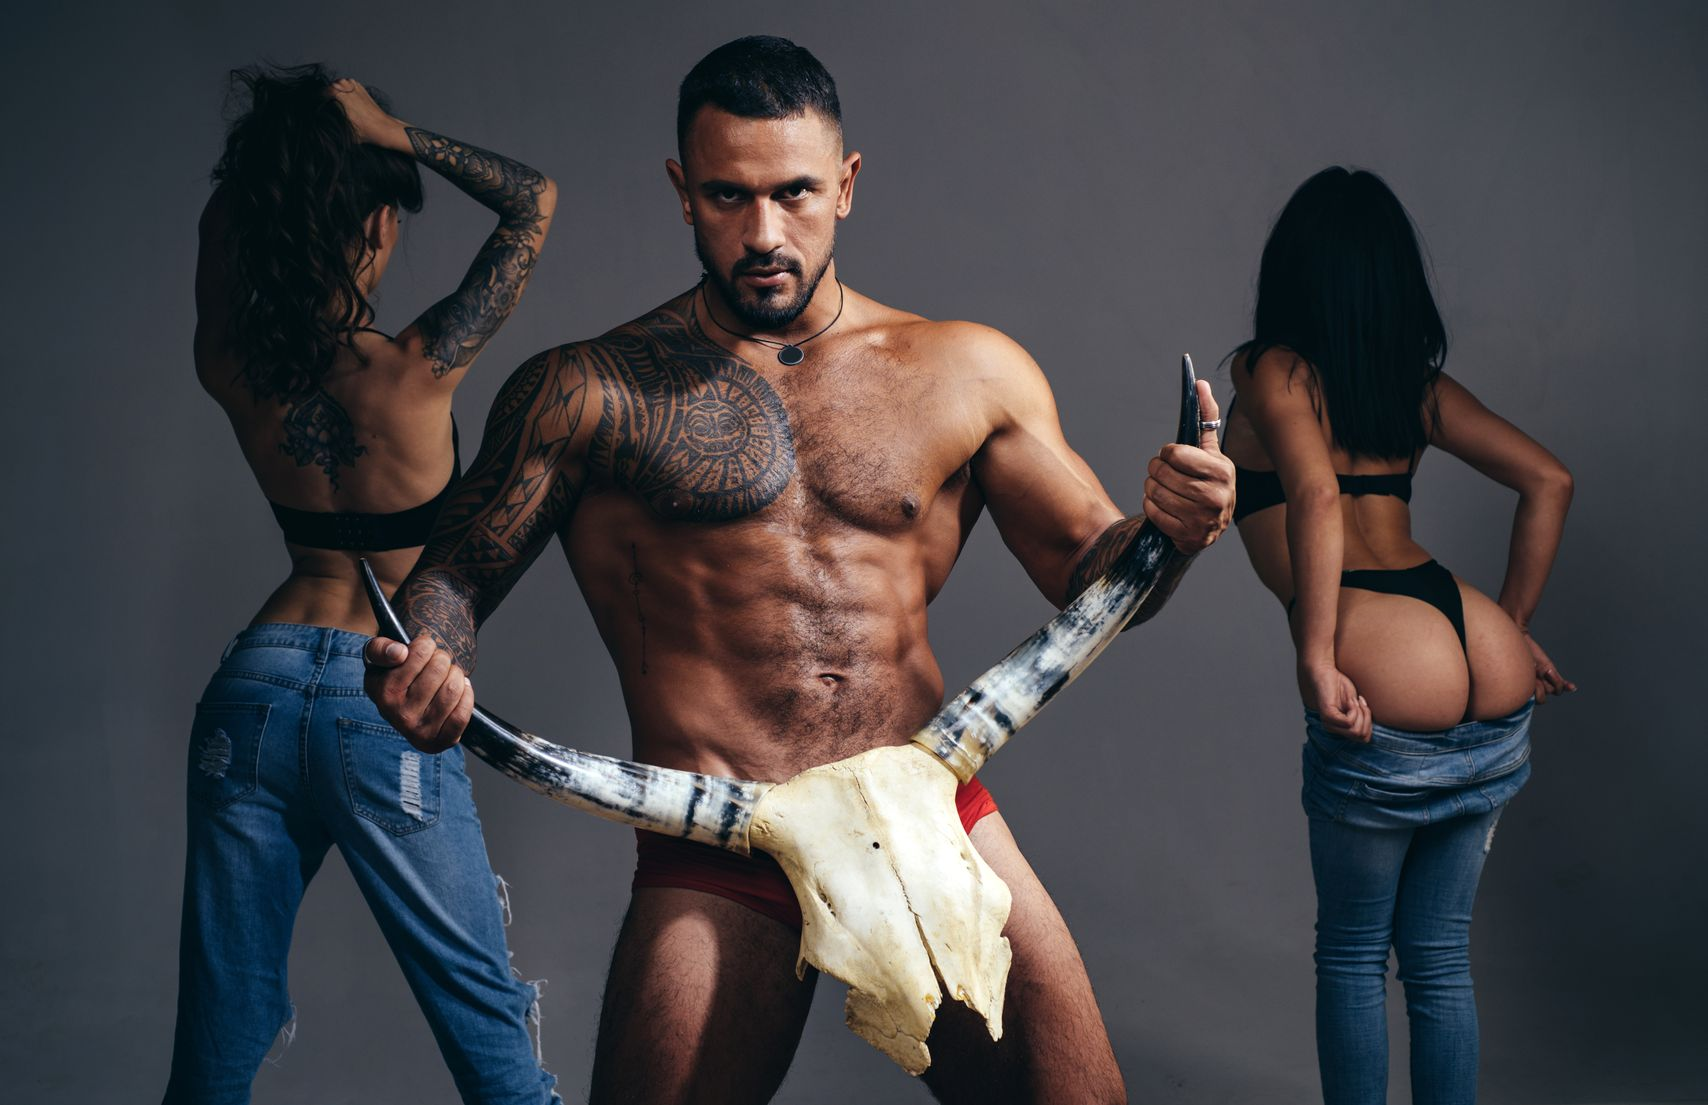 What is it like to be a swinger - The Alternative Lifestyle